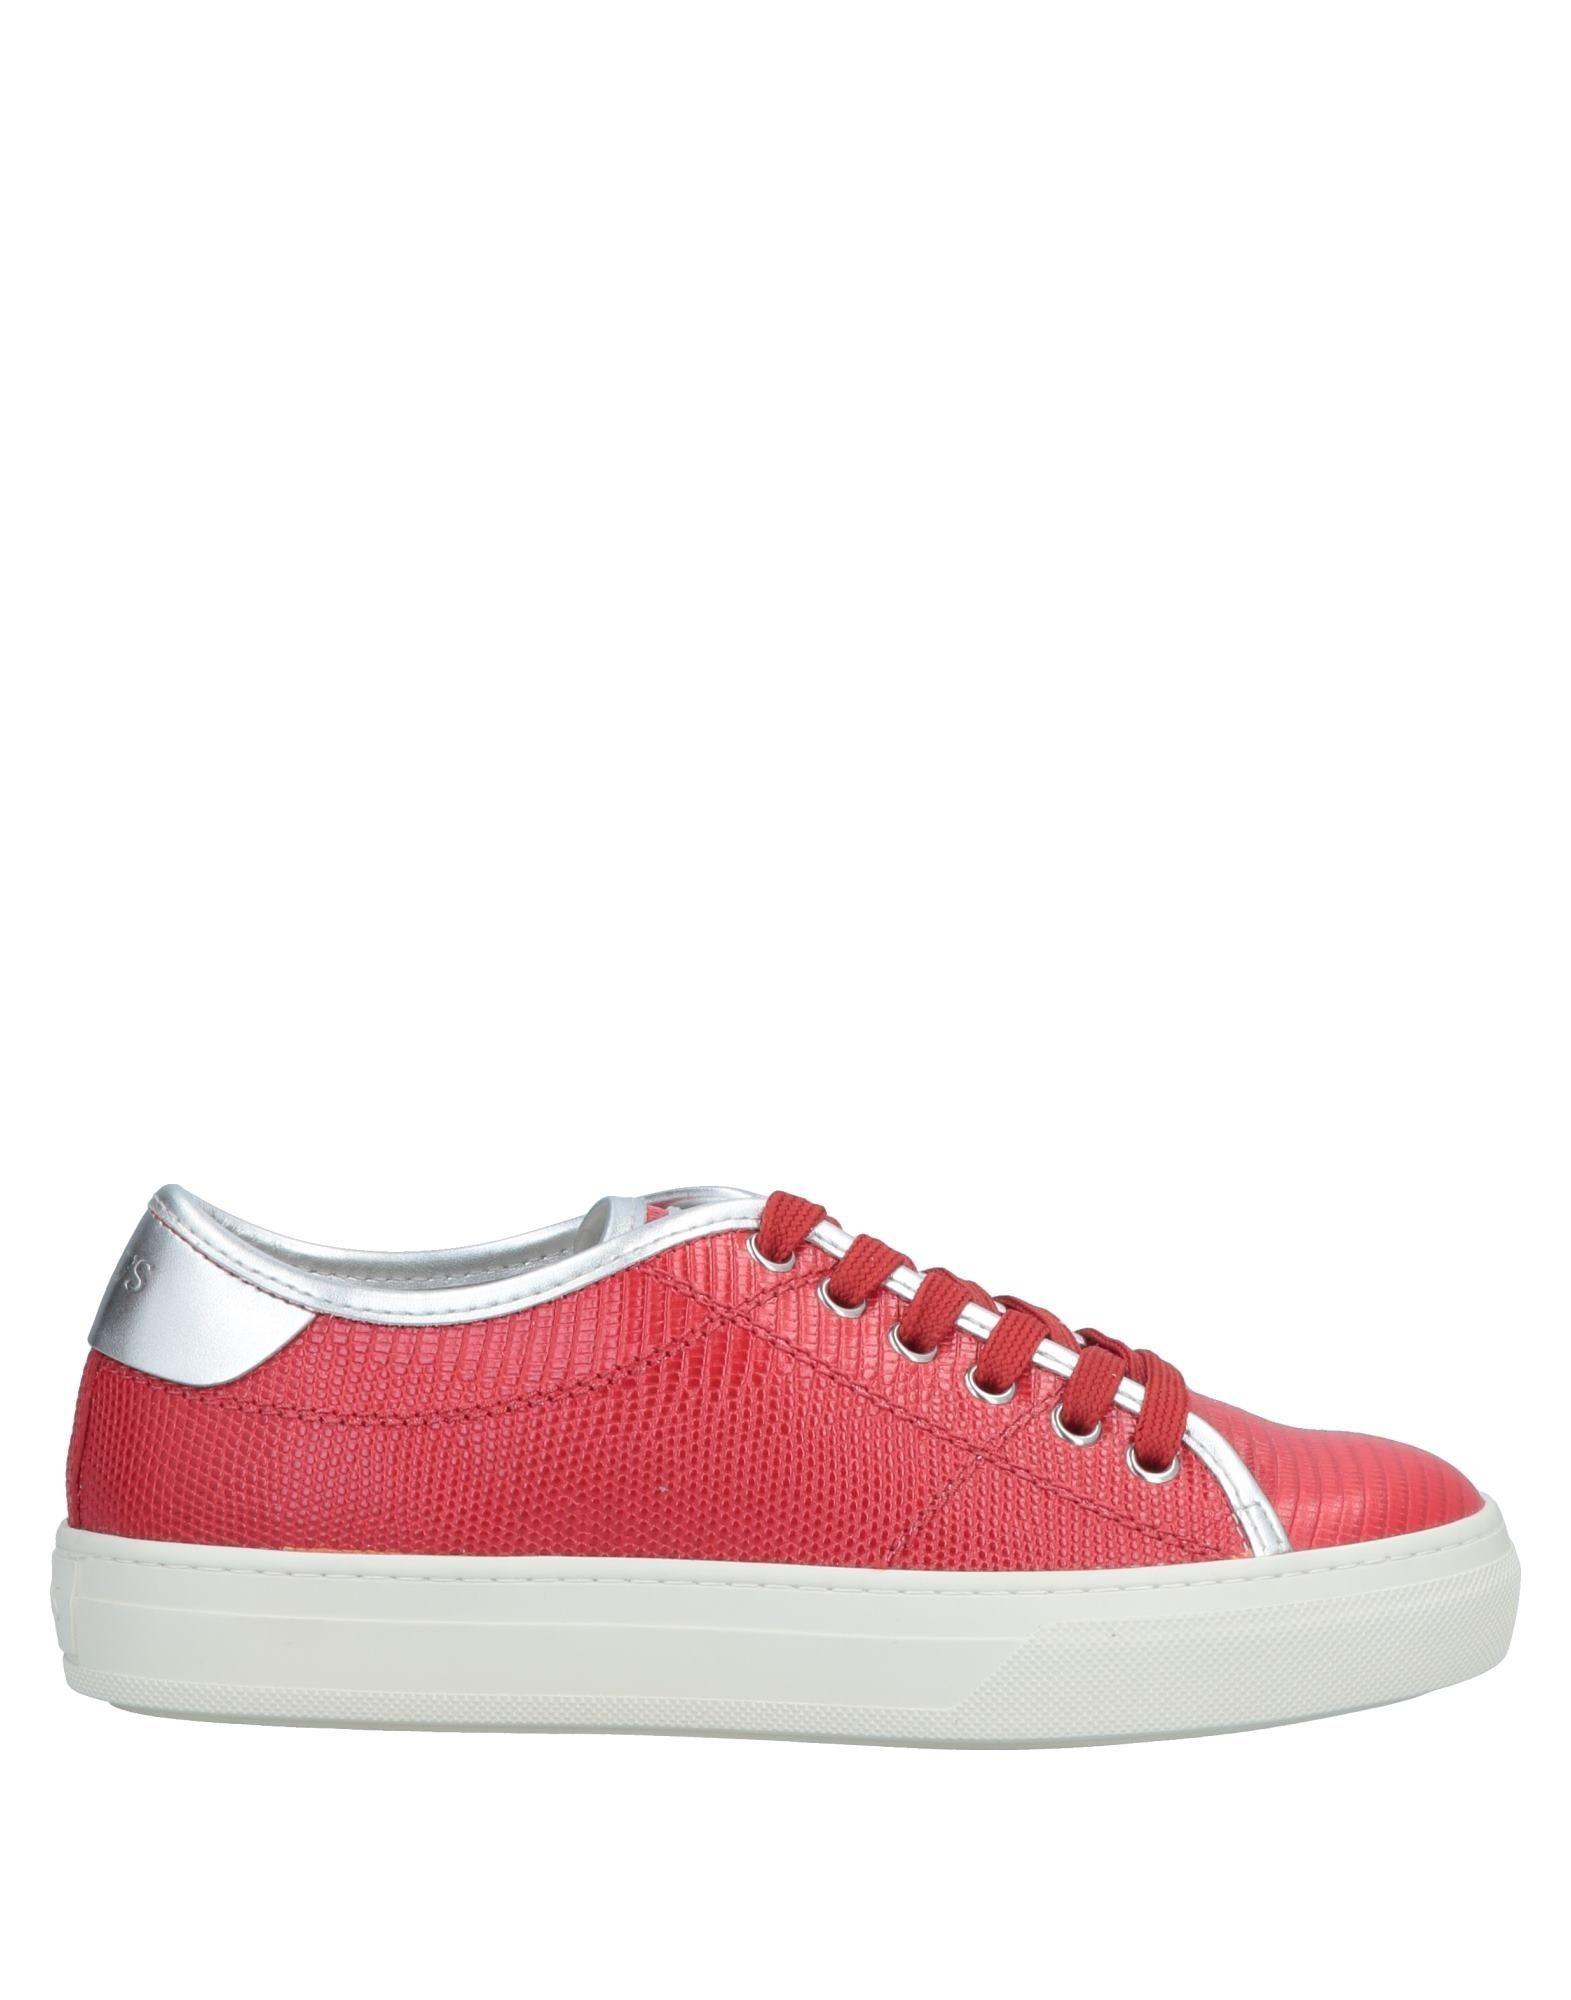 brand new 4c6e6 0dcfd tods-Red-Low-tops-Sneakers.jpeg